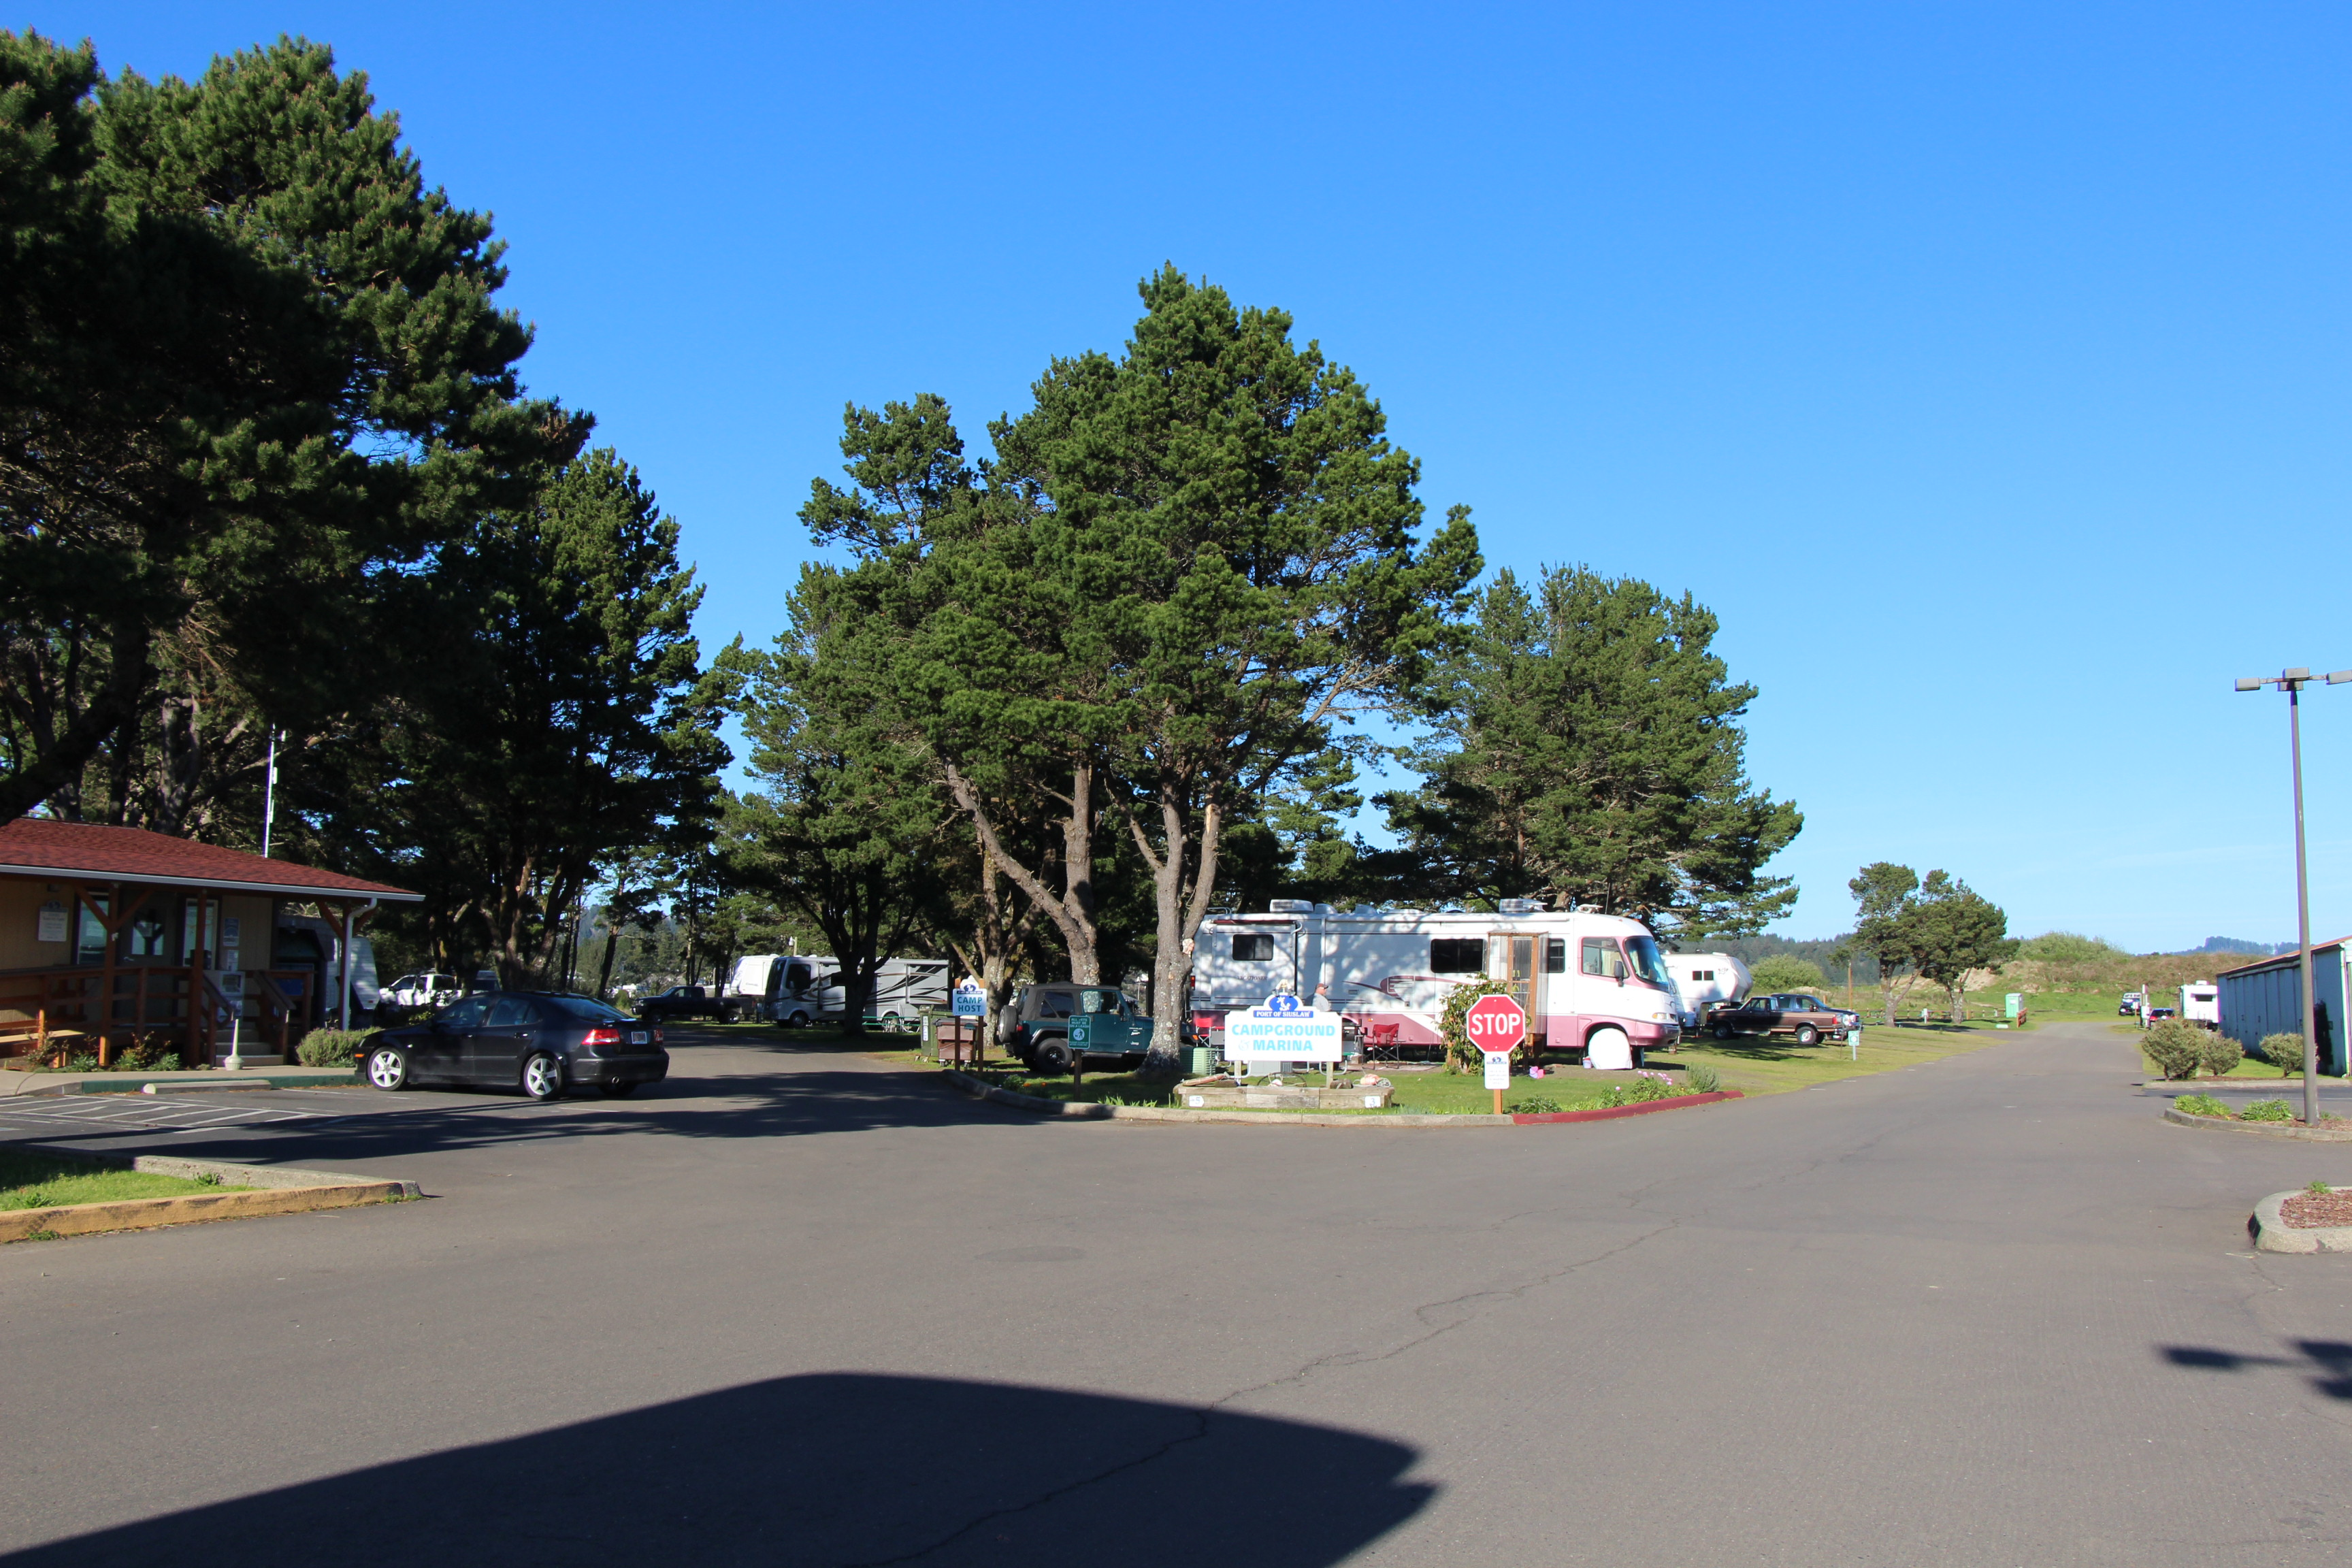 RV Park road lined with RVs.